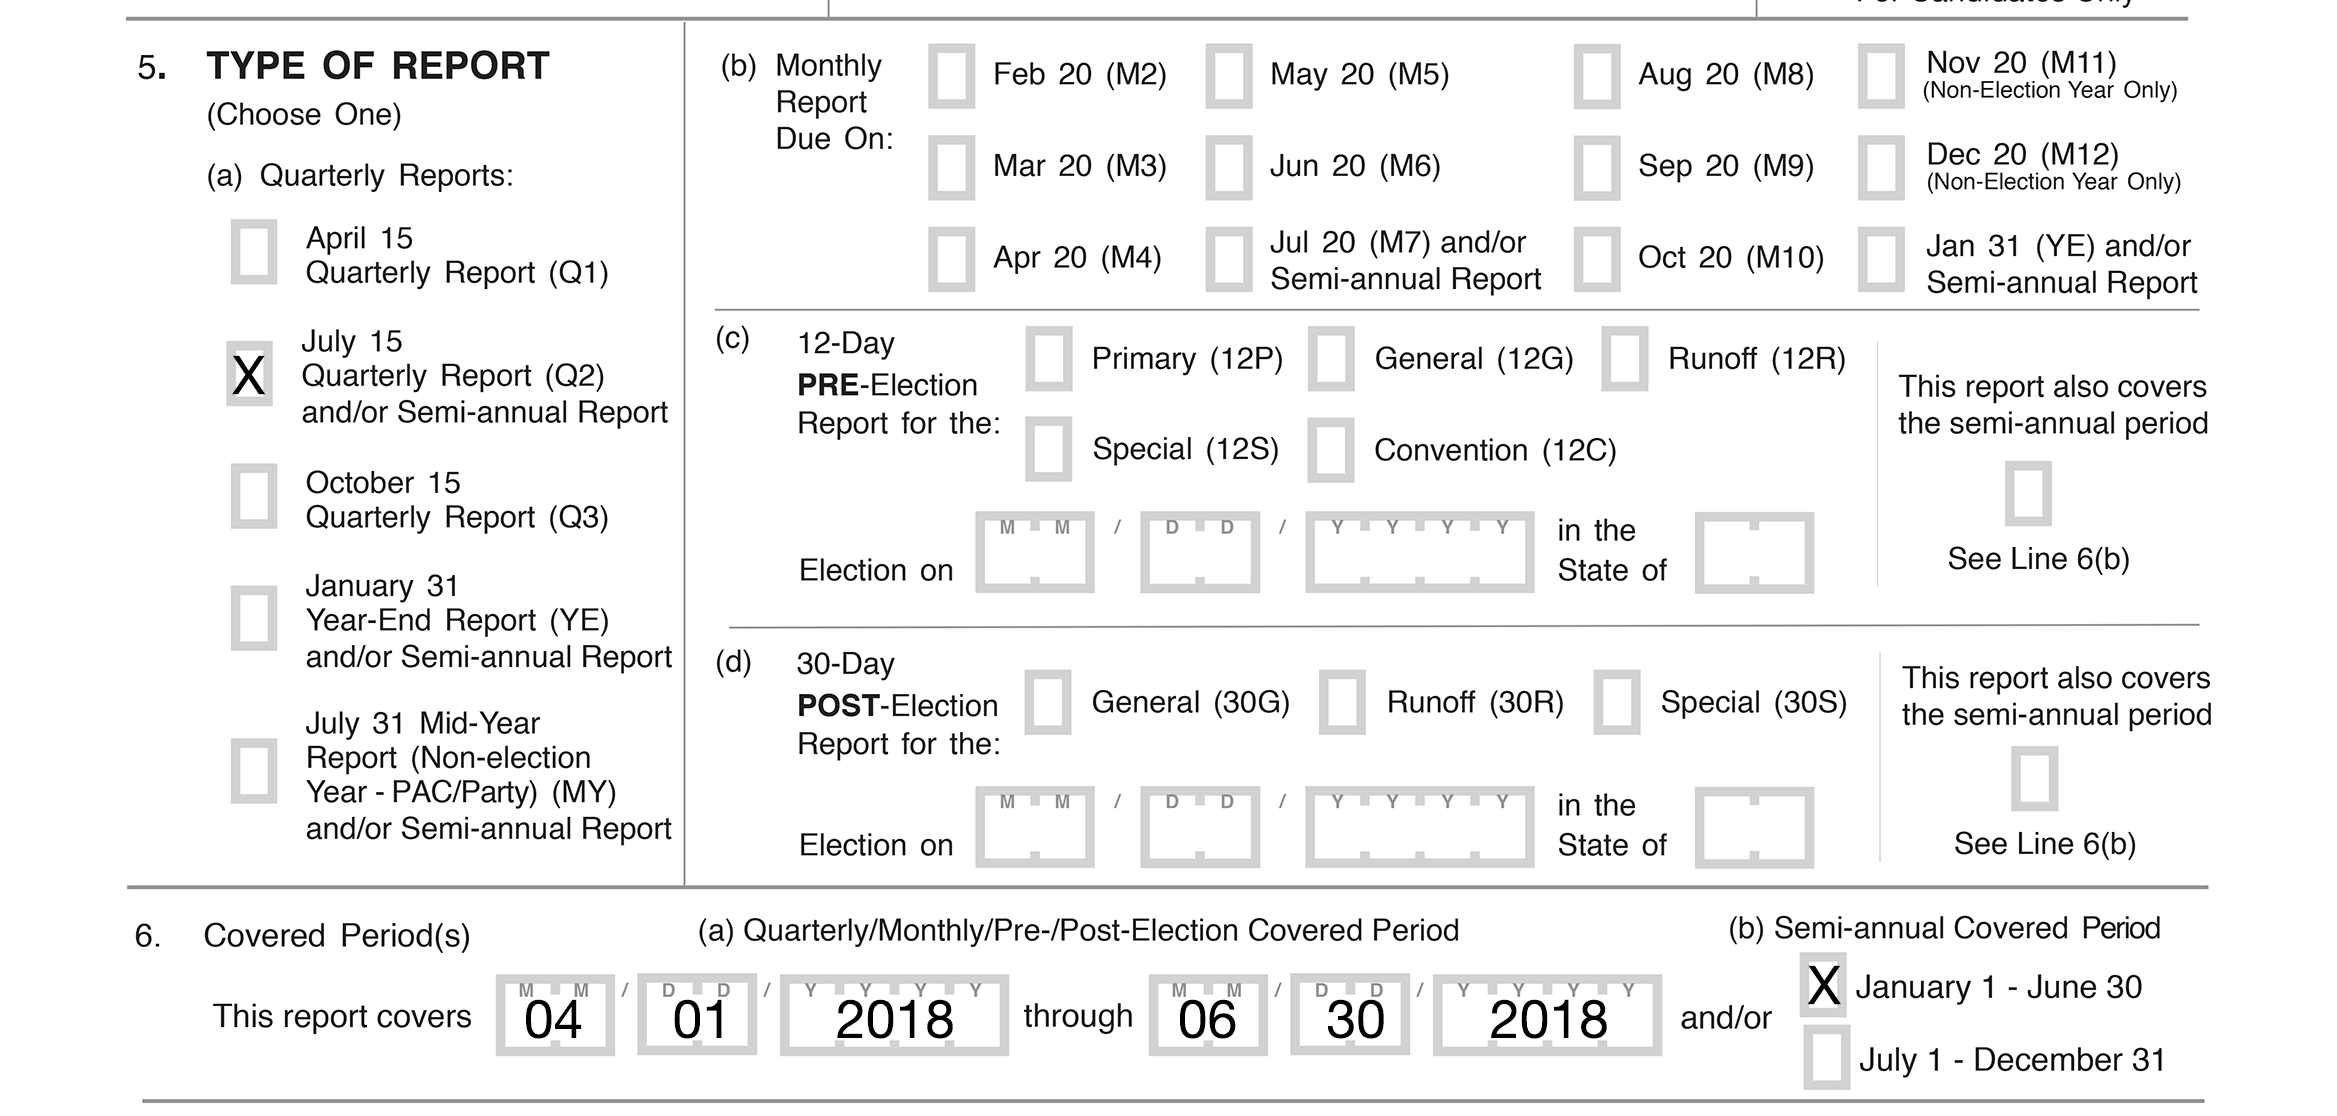 Example of FEC Form 3L illustrating how to check a box in line 5 of the summary page to indicate the type of report being submitted and the covering period